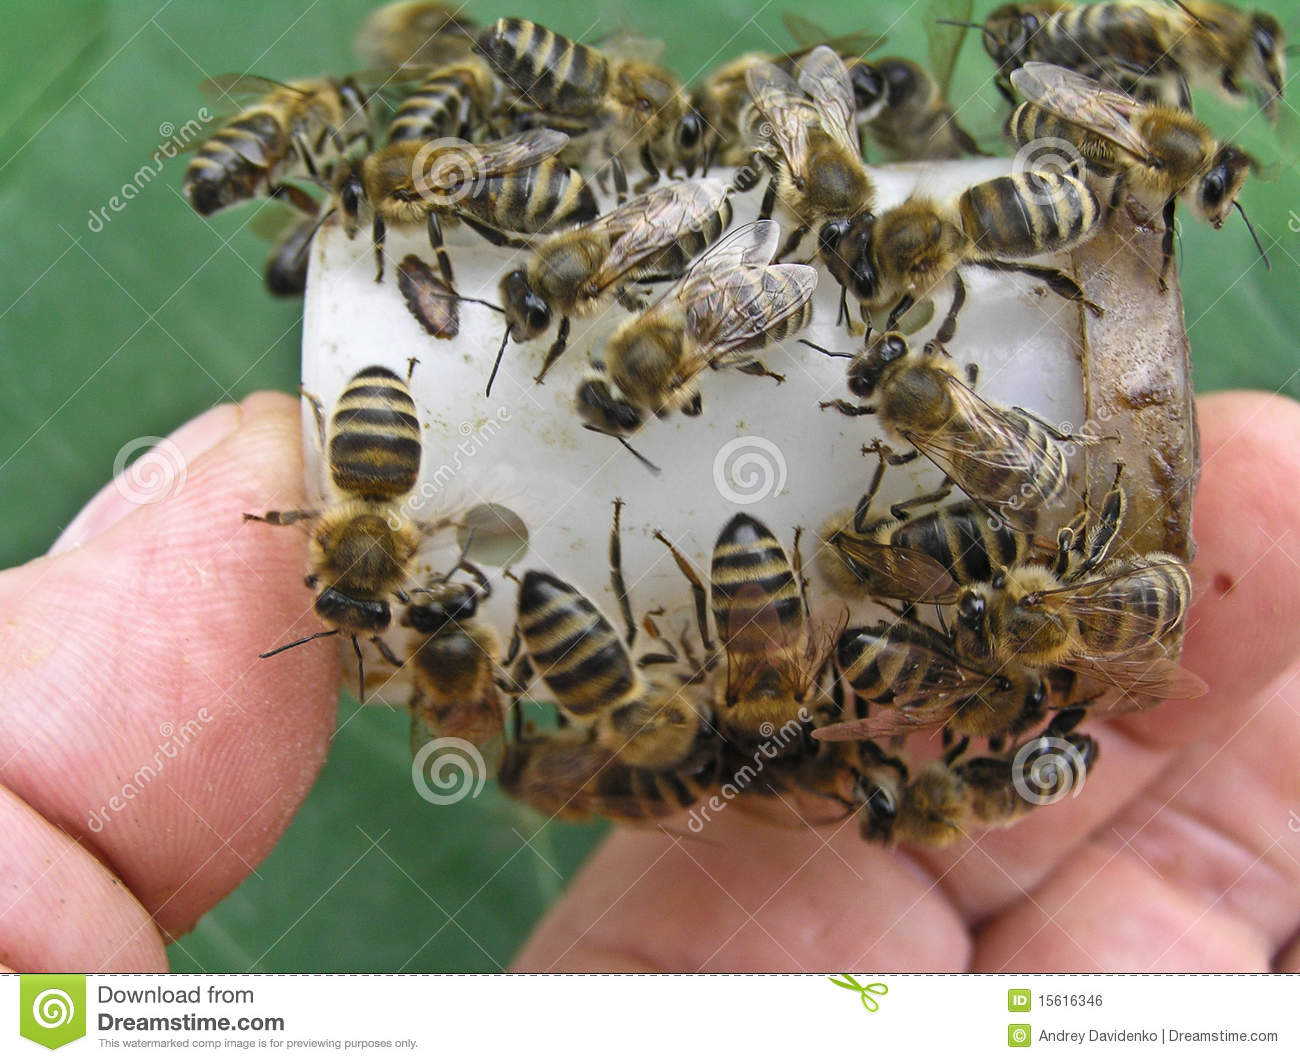 Bees on the box with the head of the family